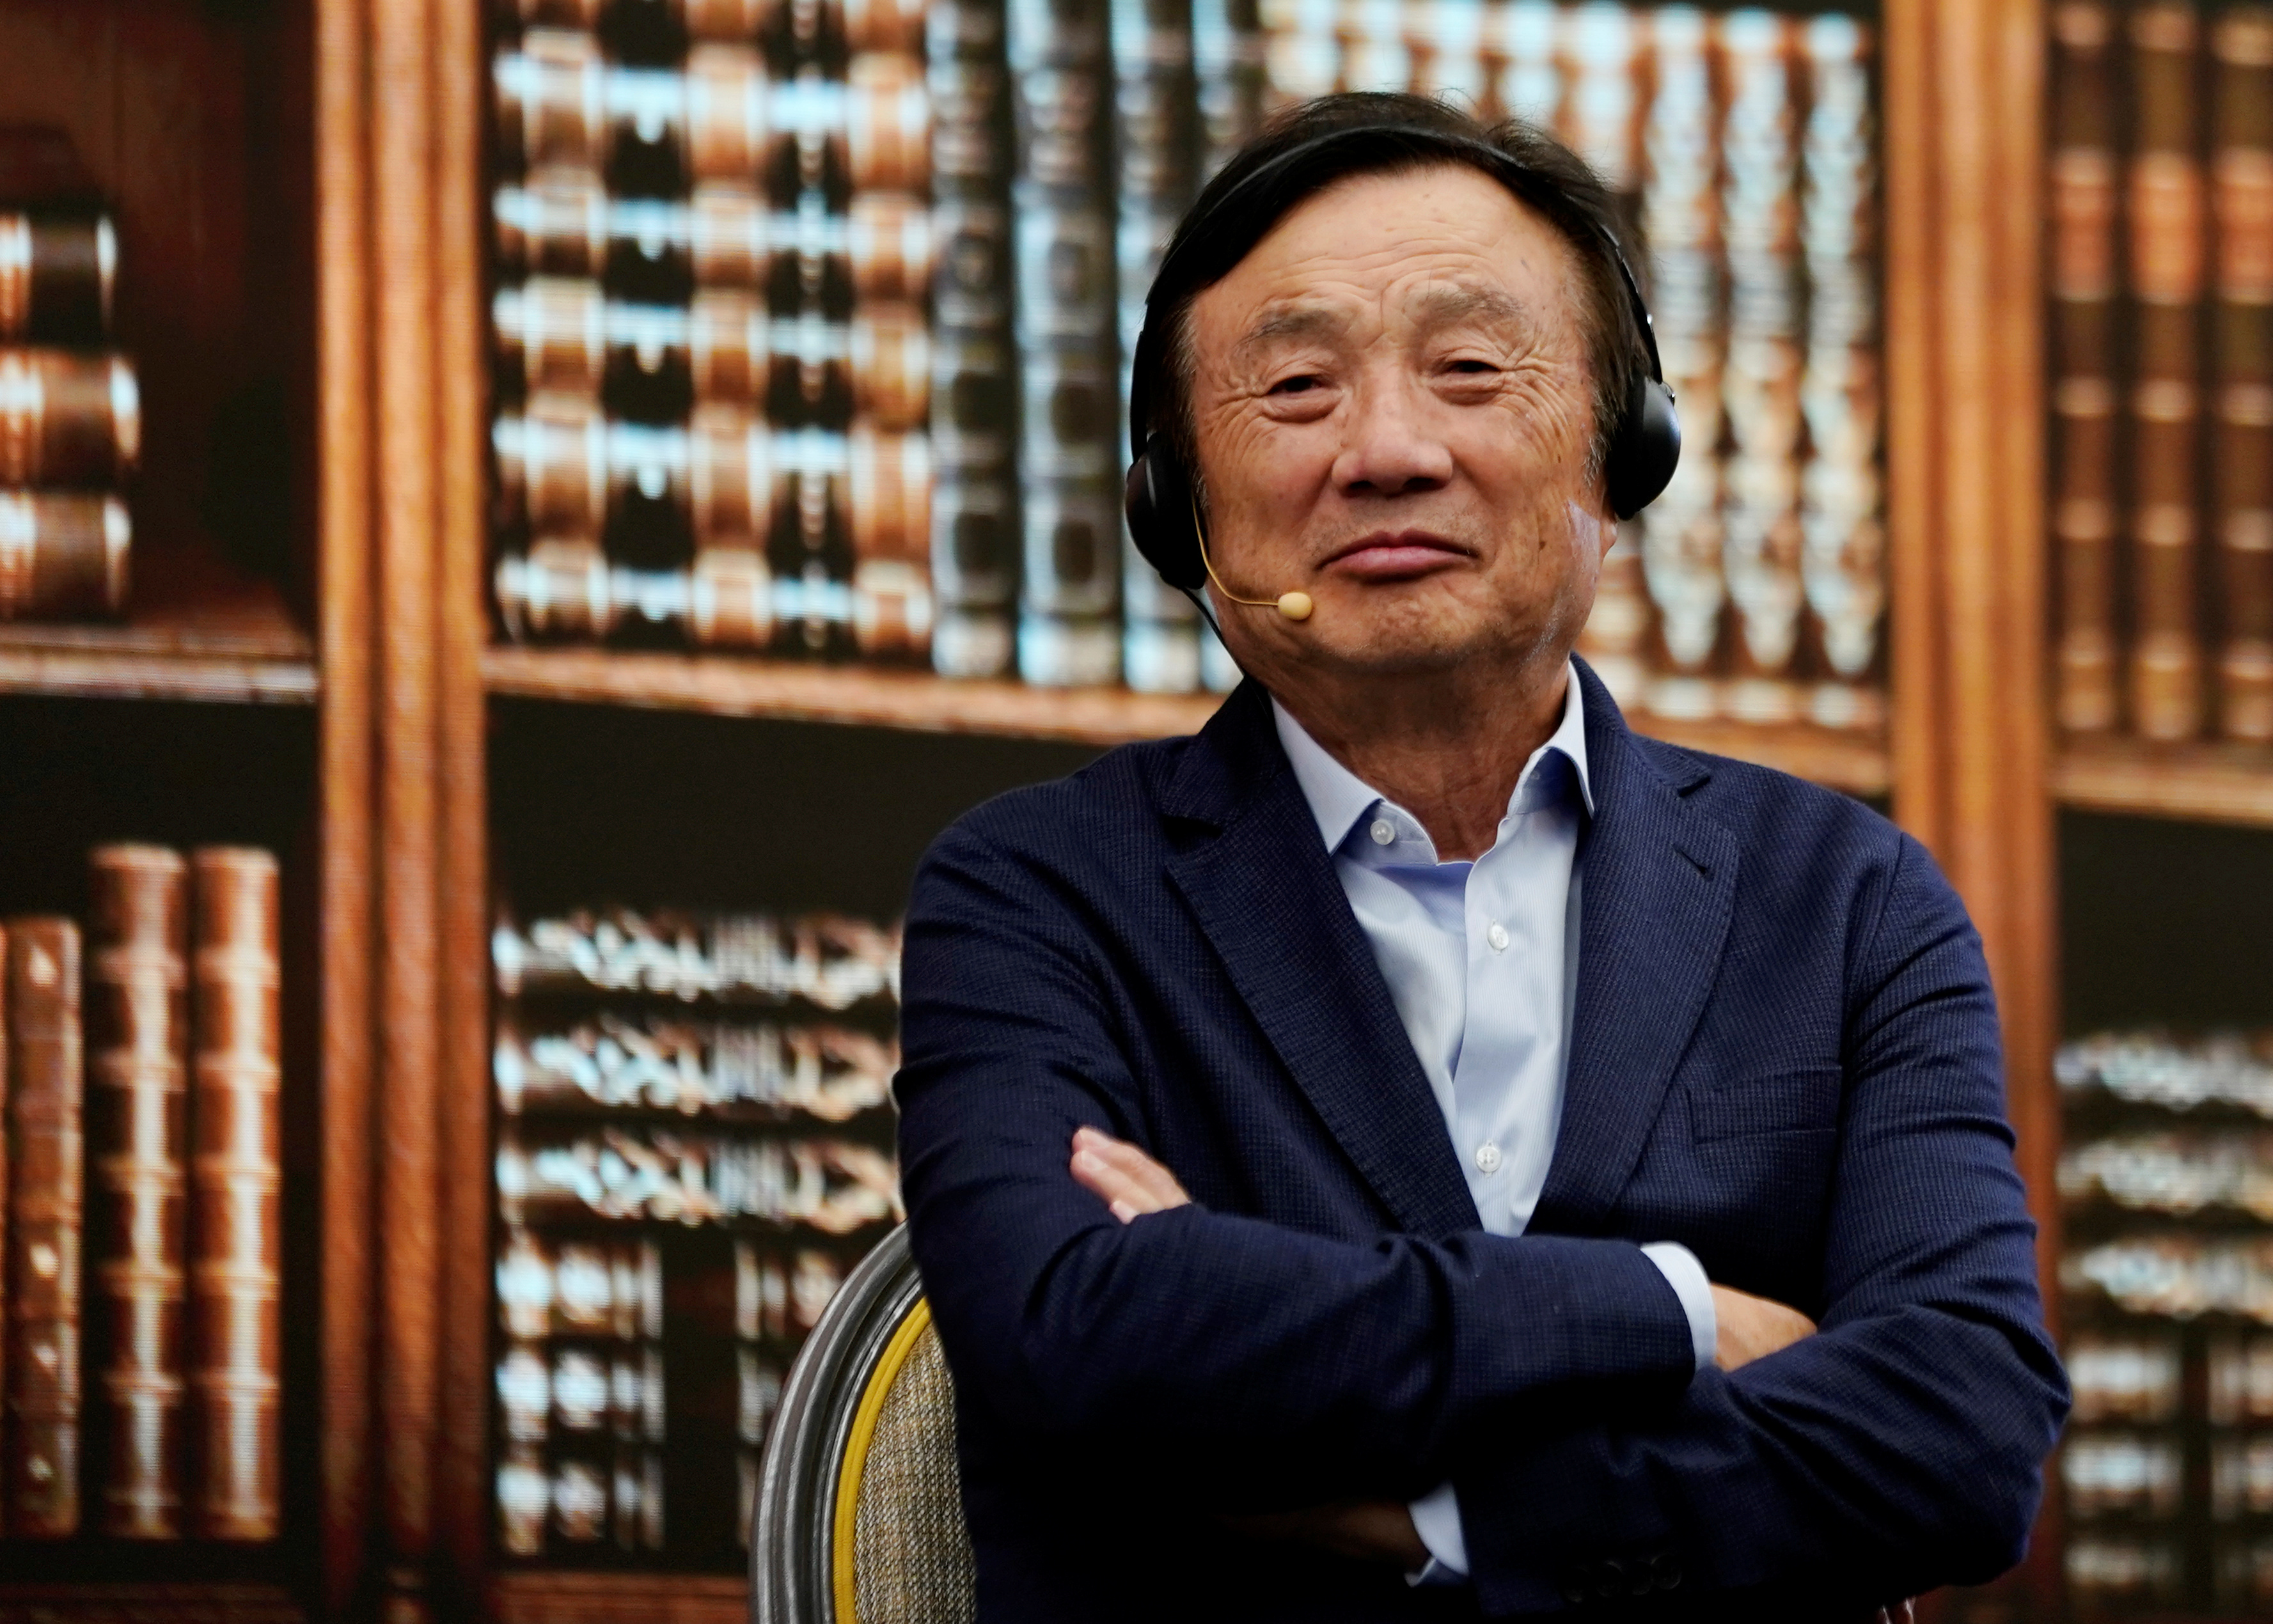 Huawei founder Ren Zhengfei attends a panel discussion at the company headquarters in Shenzhen, Guangdong province, China June 17, 2019. REUTERS/Aly Song